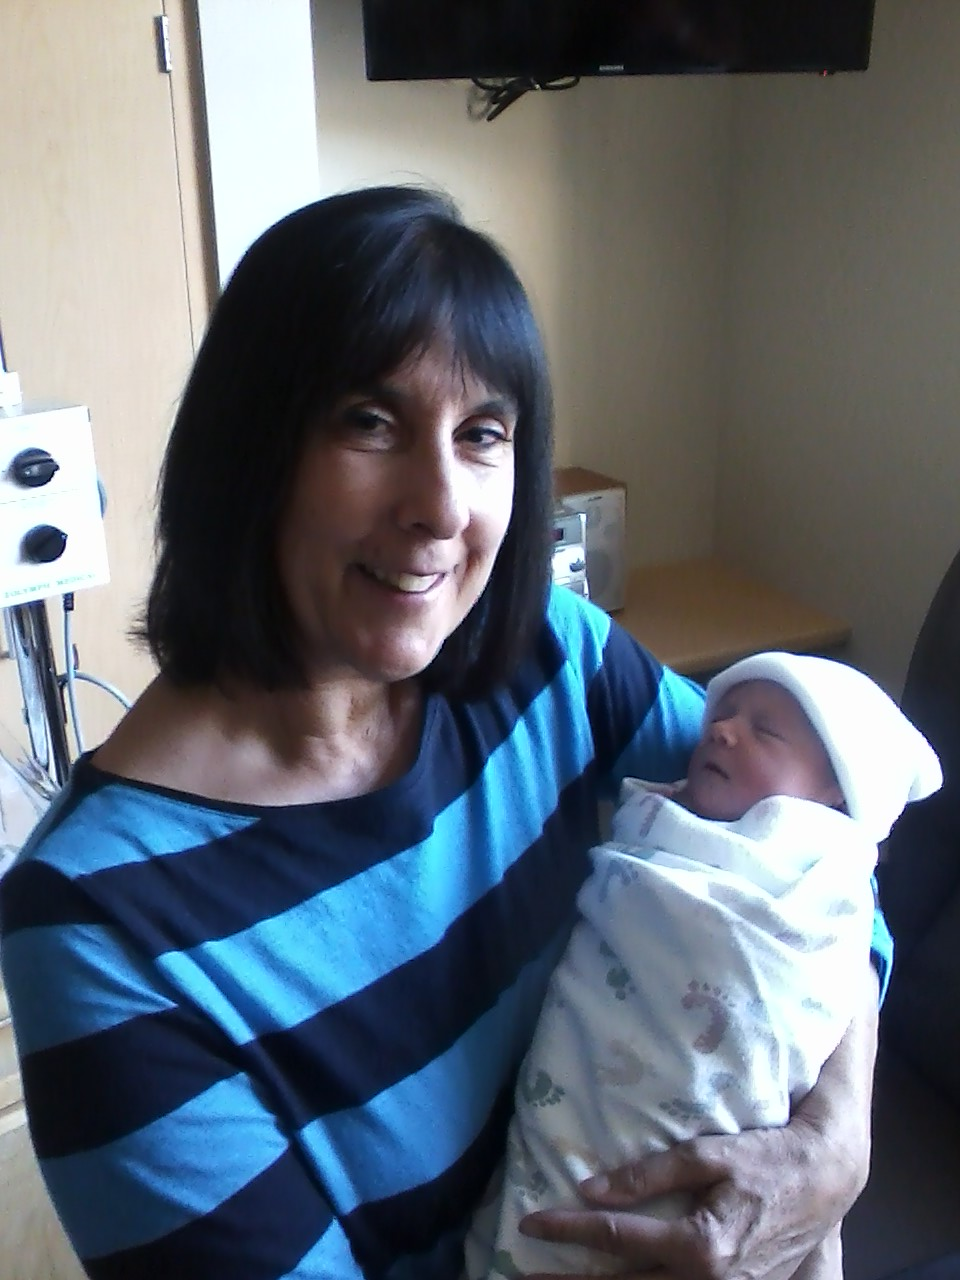 My mom (Grandma) with Mikayla.